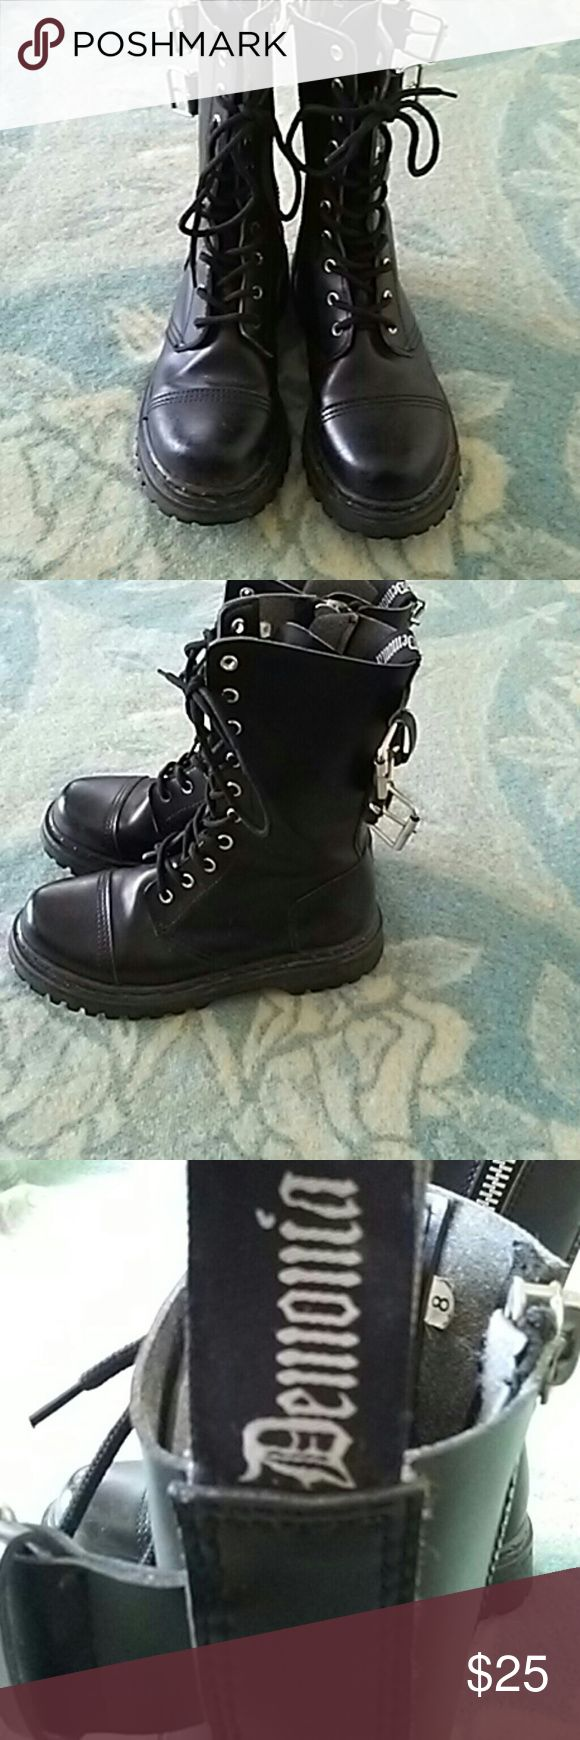 Demonia Punk Goth Combat Boots Men's size 8, women's 9.5. Very cute and durable boots. A little too big for me, so I believe they are true to size Demonia Shoes Combat & Moto Boots